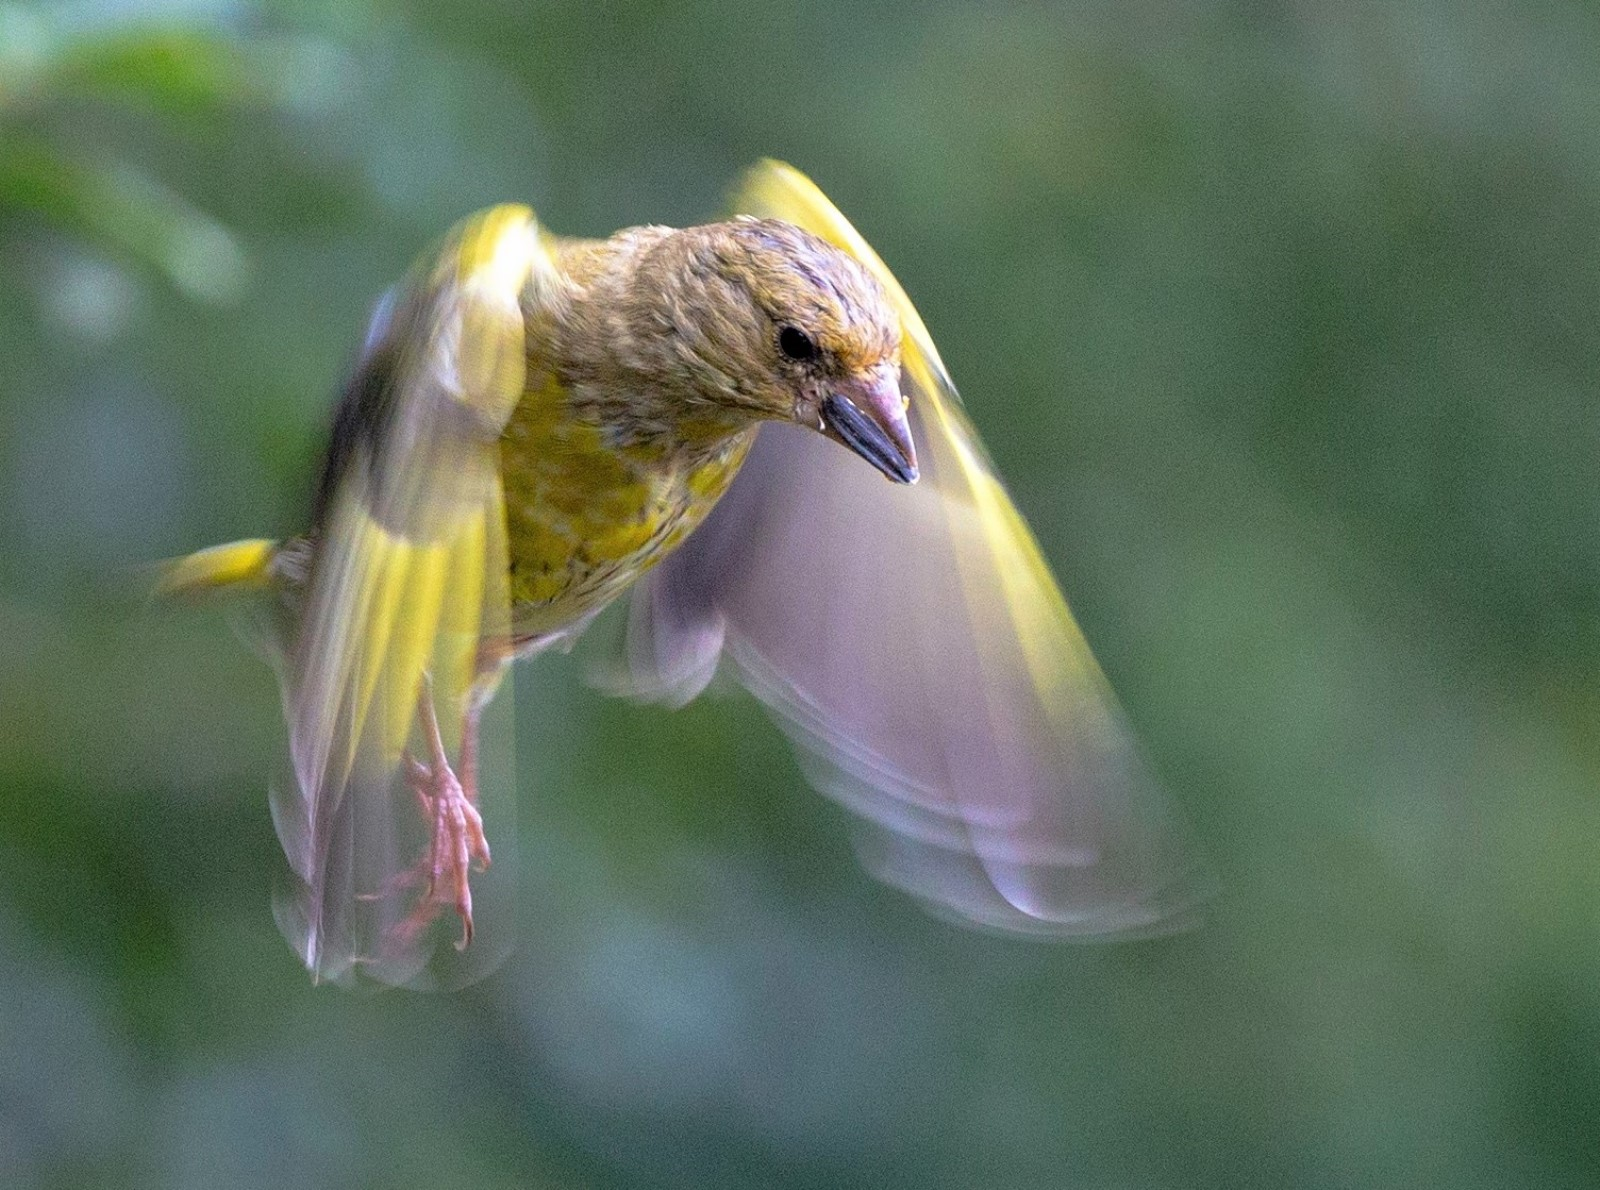 'Mystic Hovering' by Shannon James